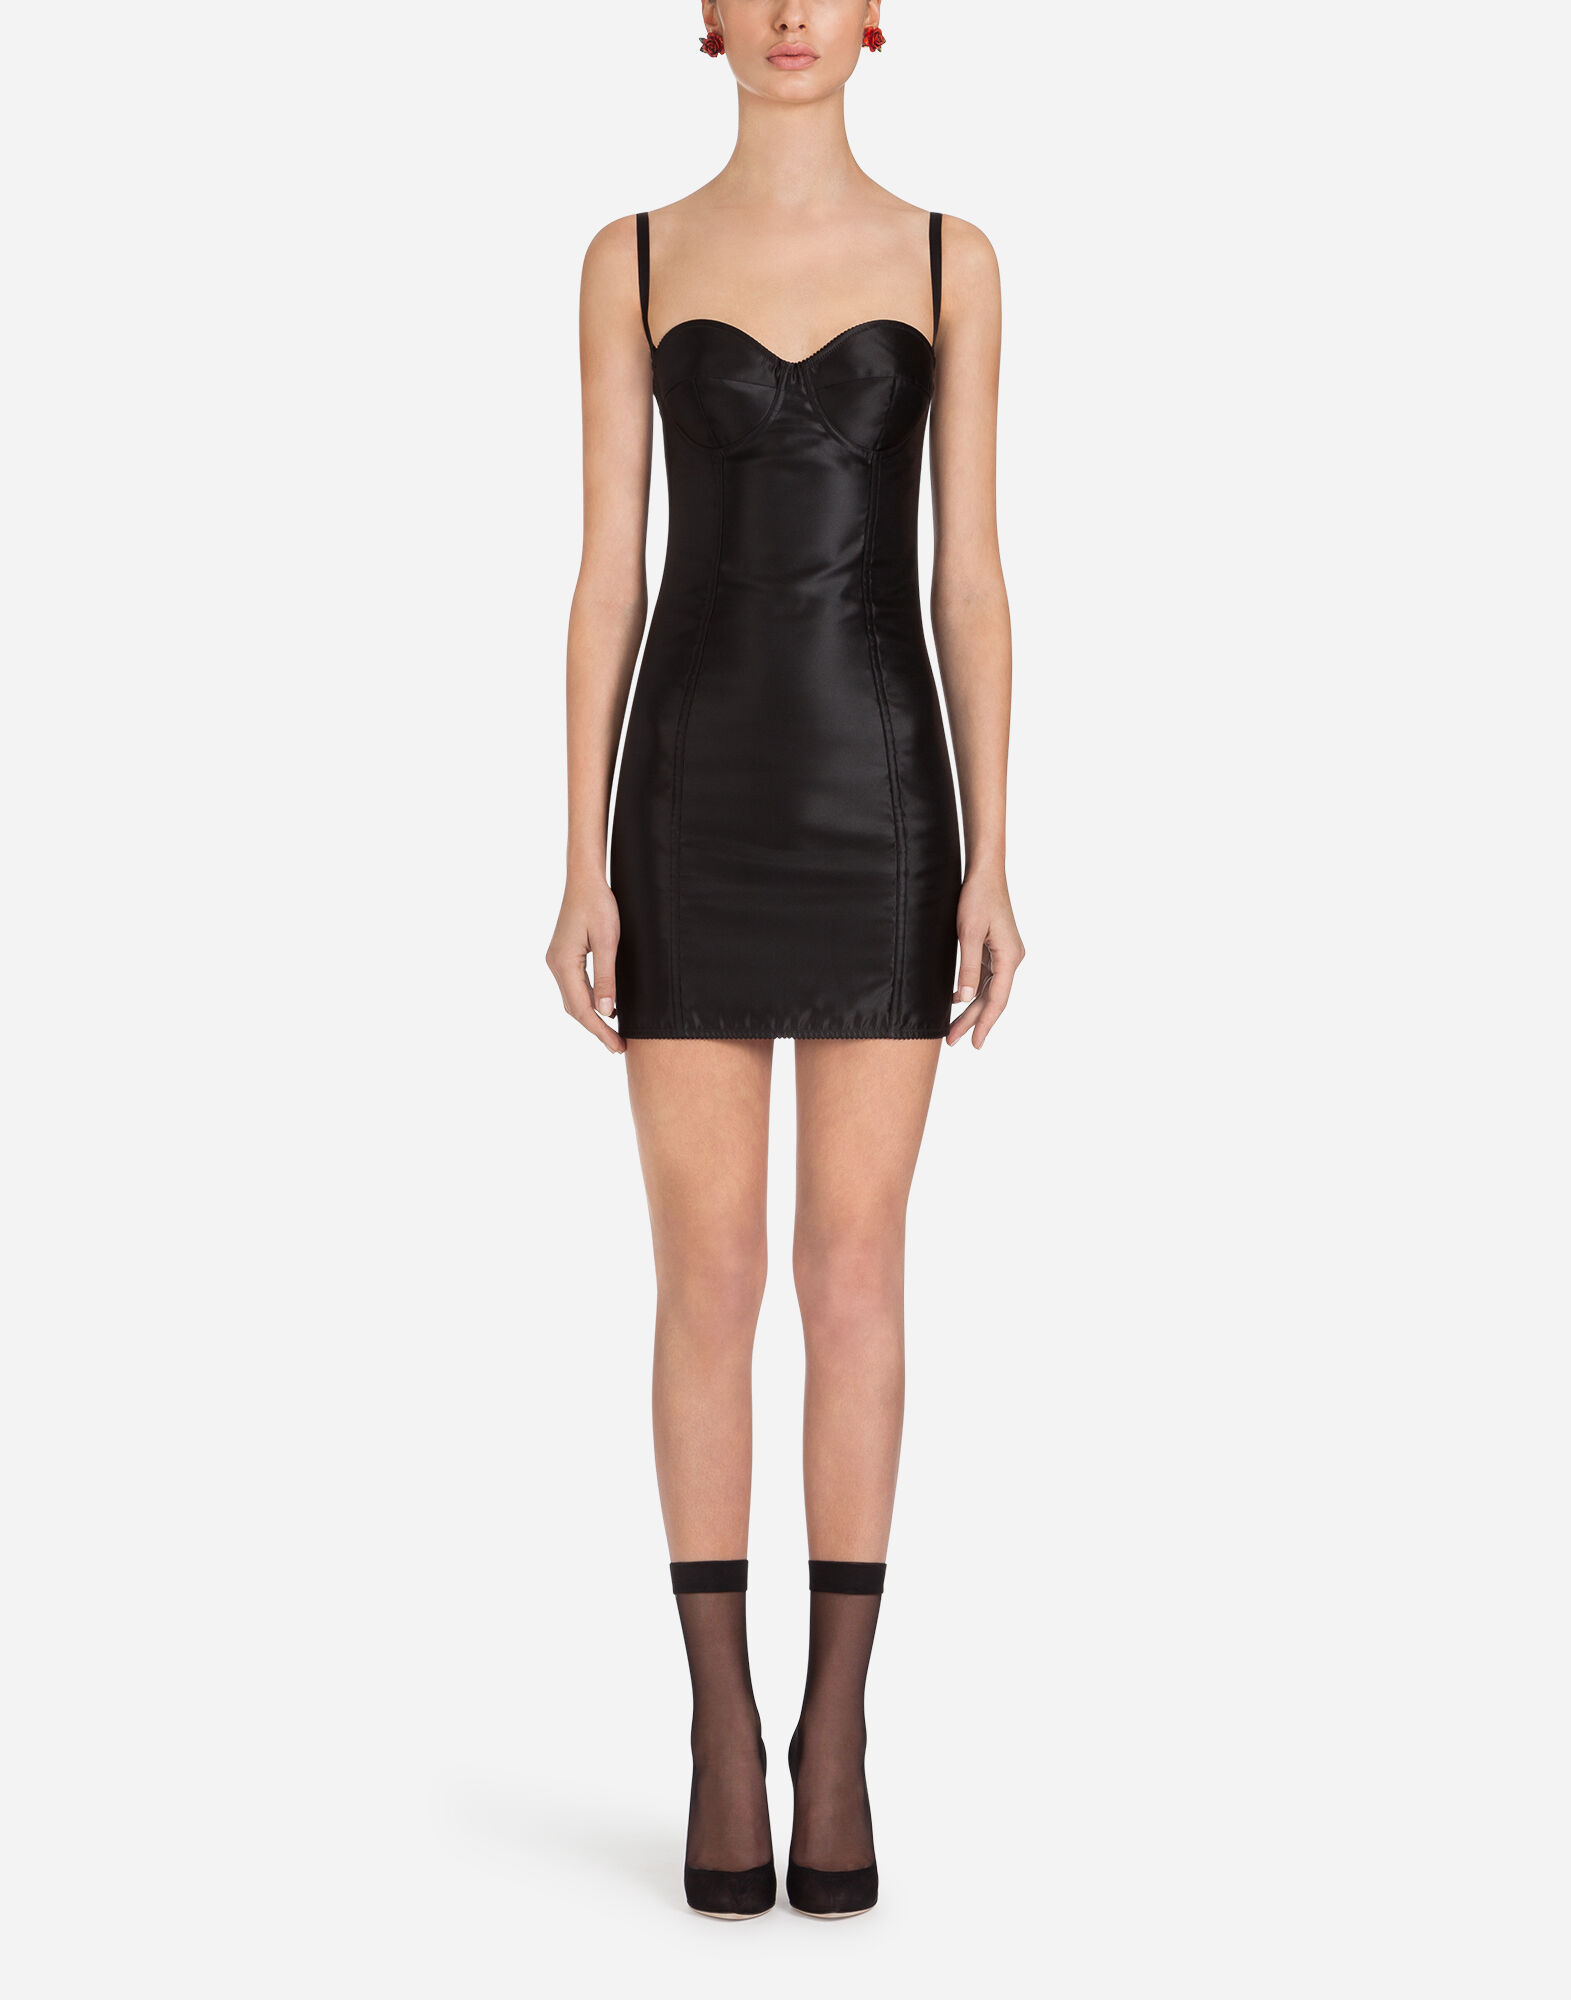 Dolce And Gabbana Black Sateen Bustier Dress